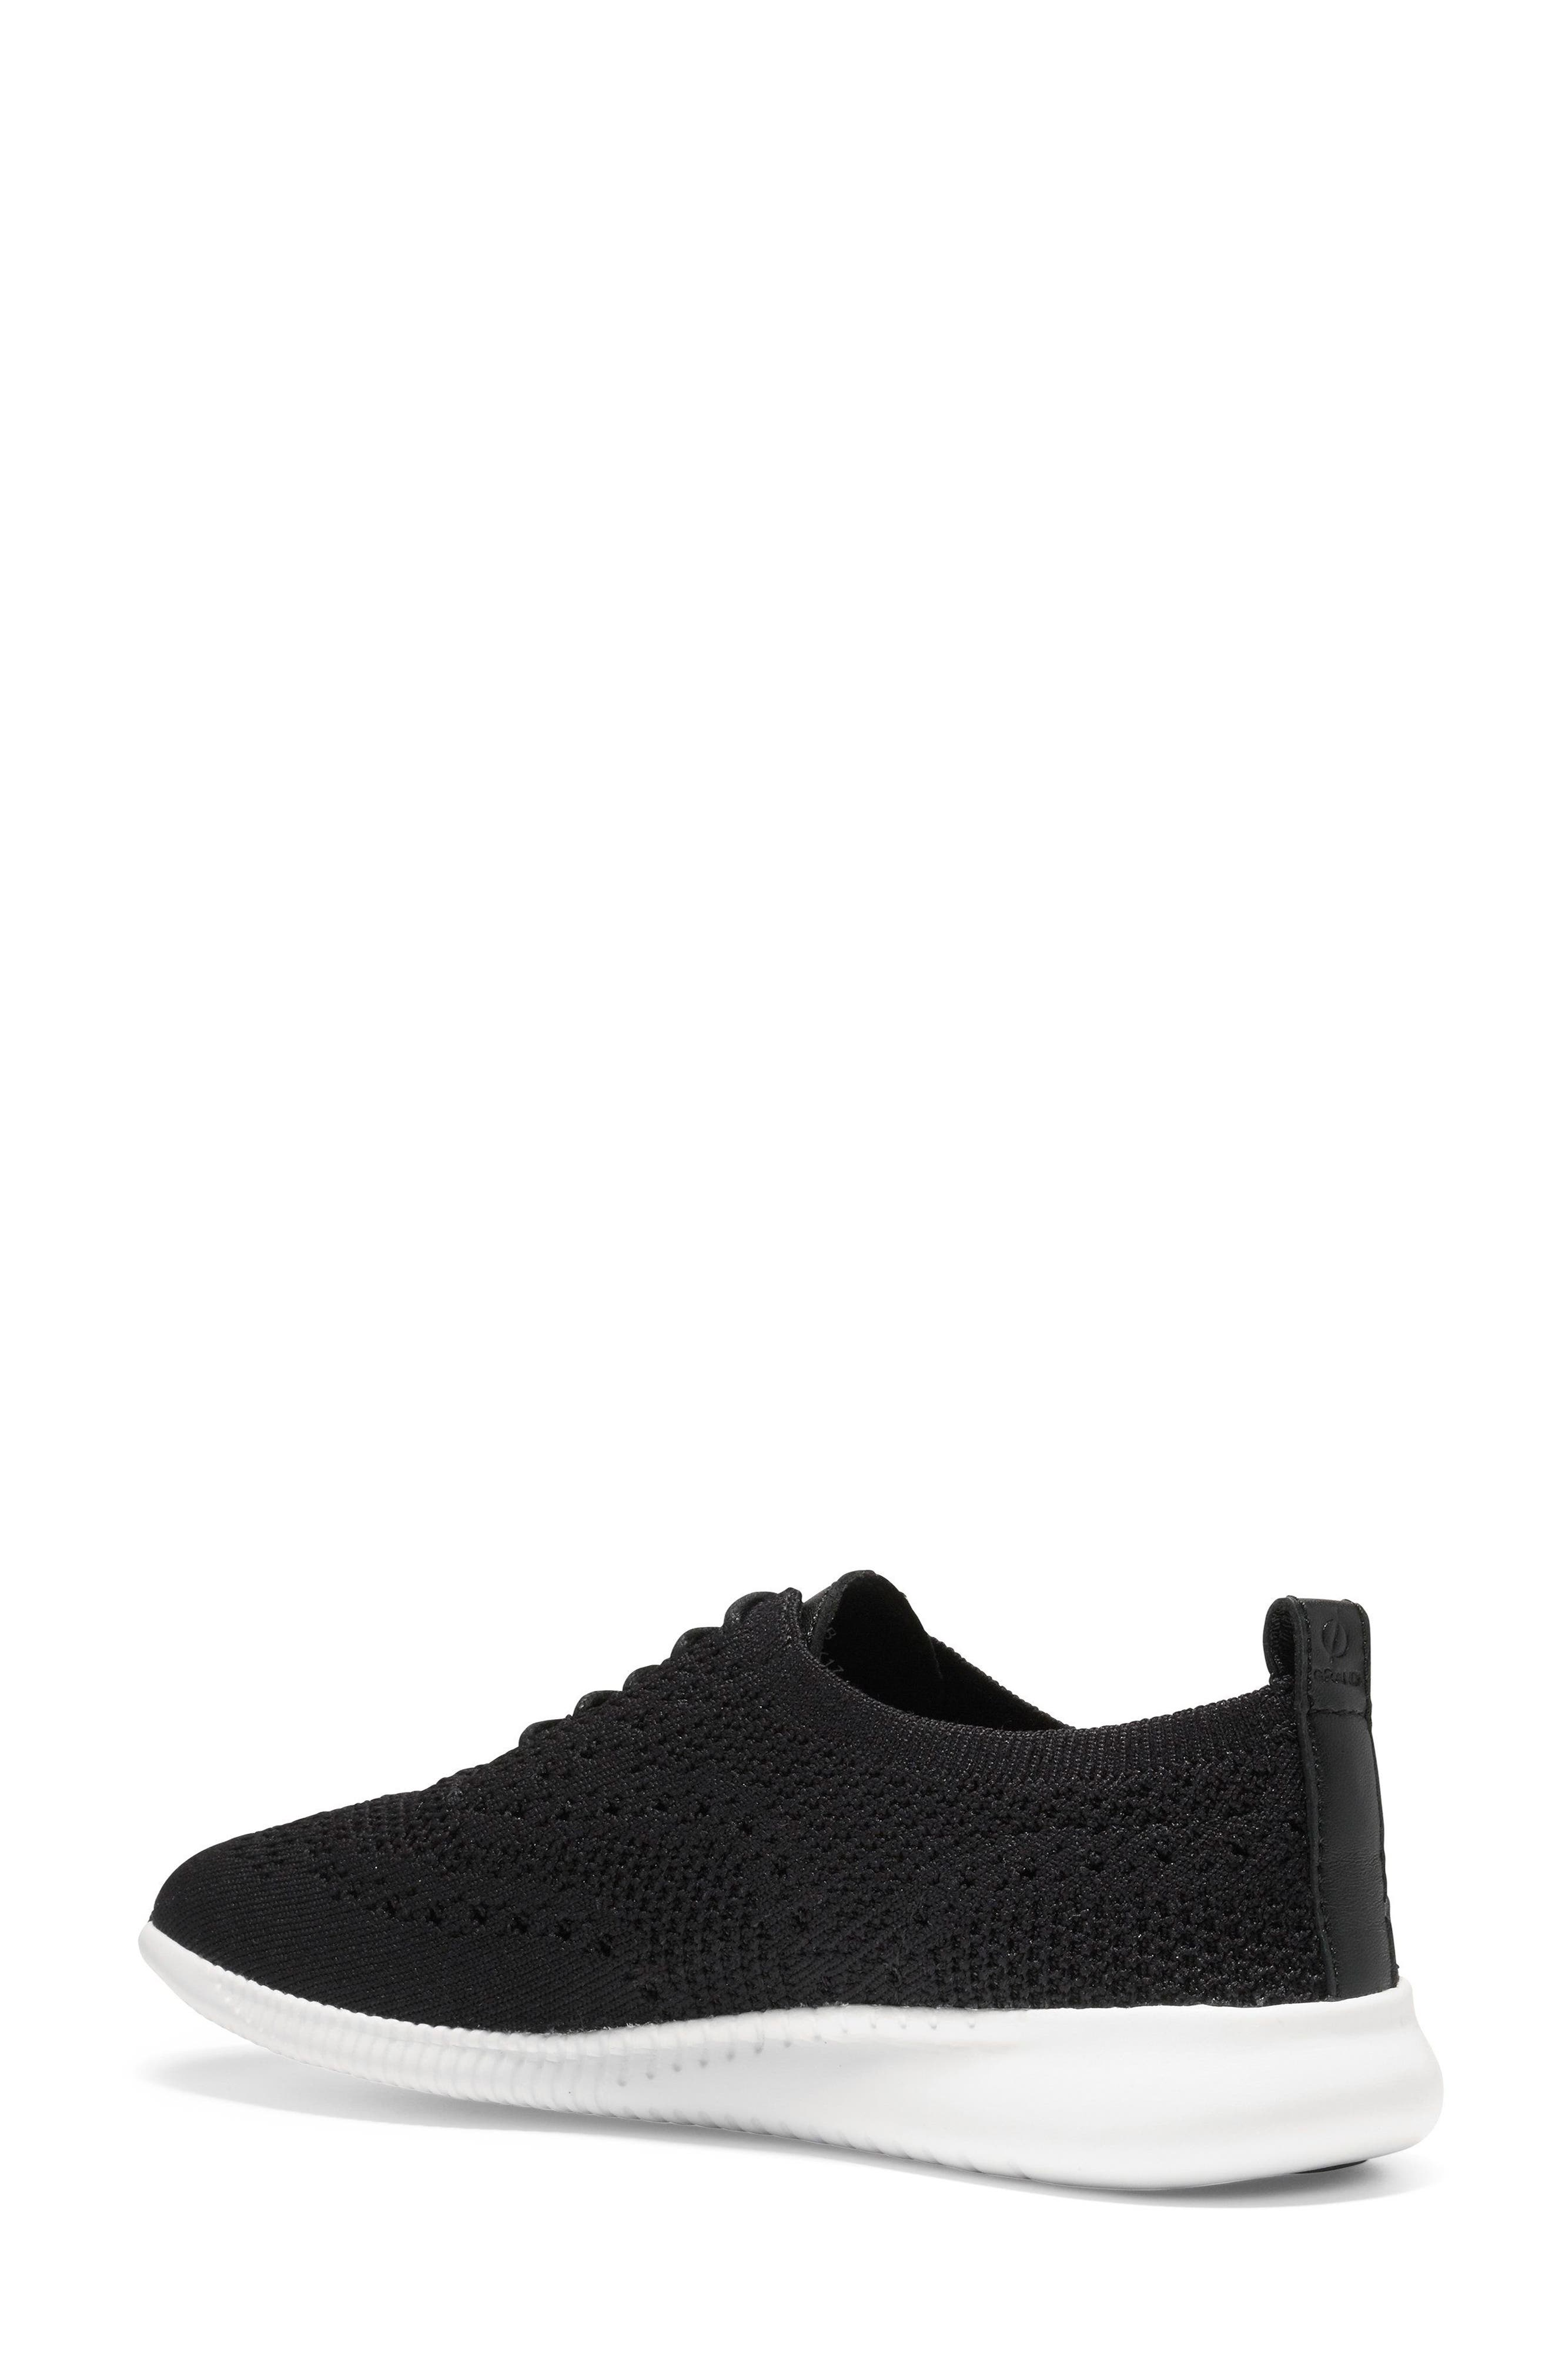 COLE HAAN, 2.ZERØGRAND Stitchlite Wingtip Sneaker, Alternate thumbnail 2, color, BLACK FABRIC